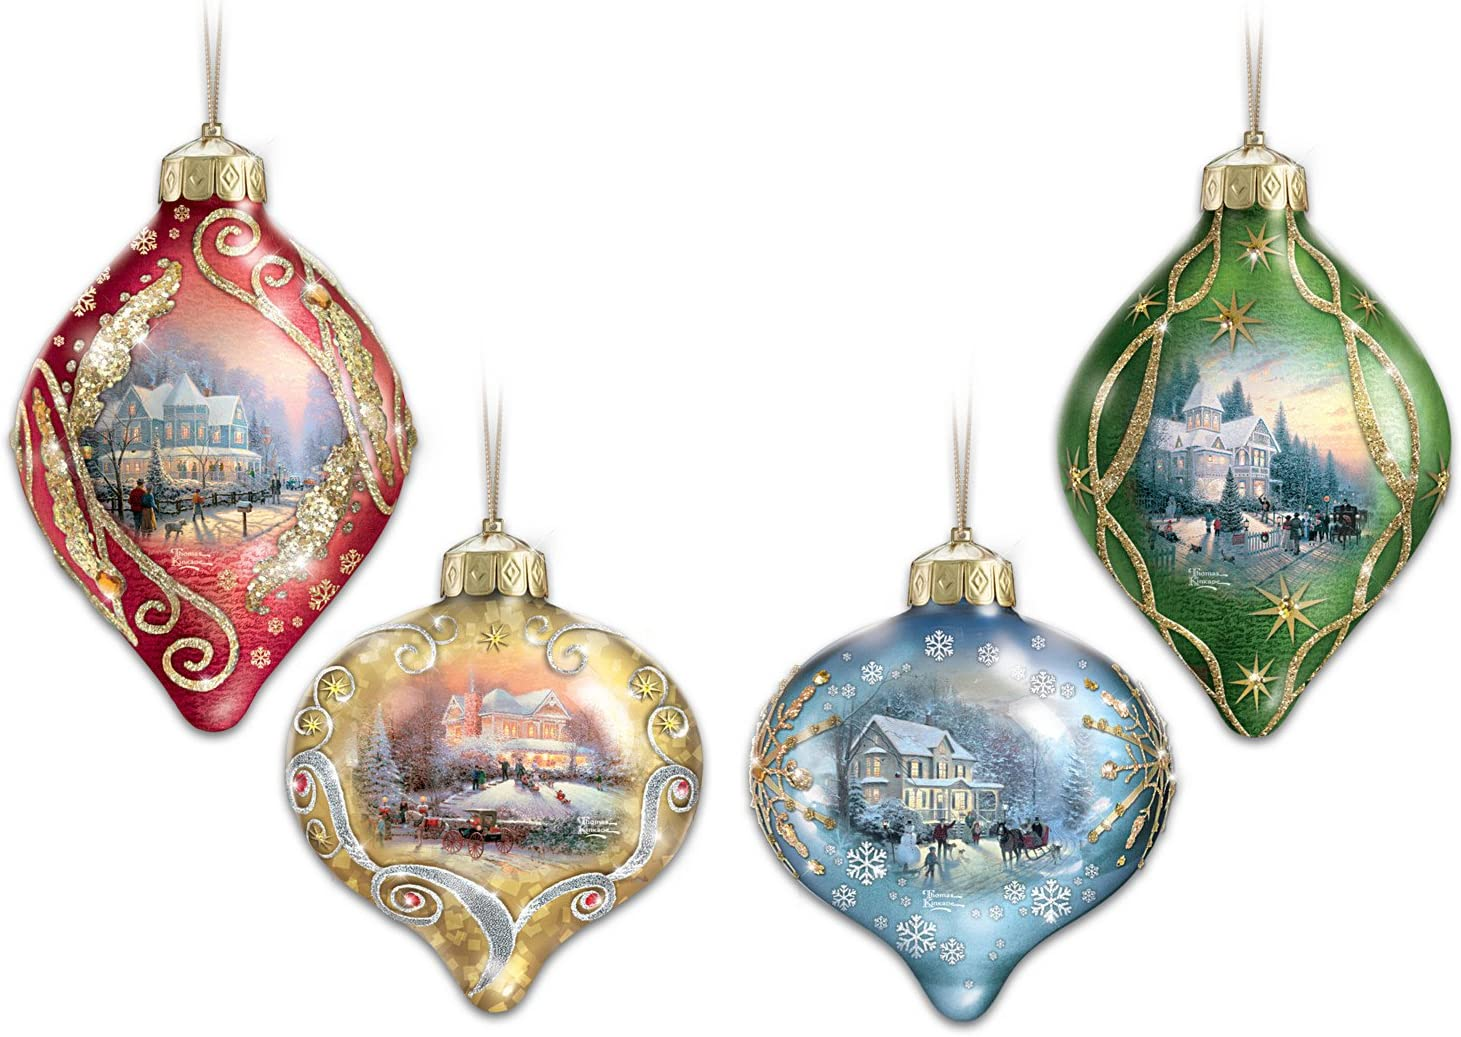 Thomas Kinkade Light Up the Season Illuminated Glass Ornaments: Set of 4 by The Bradford Exchange